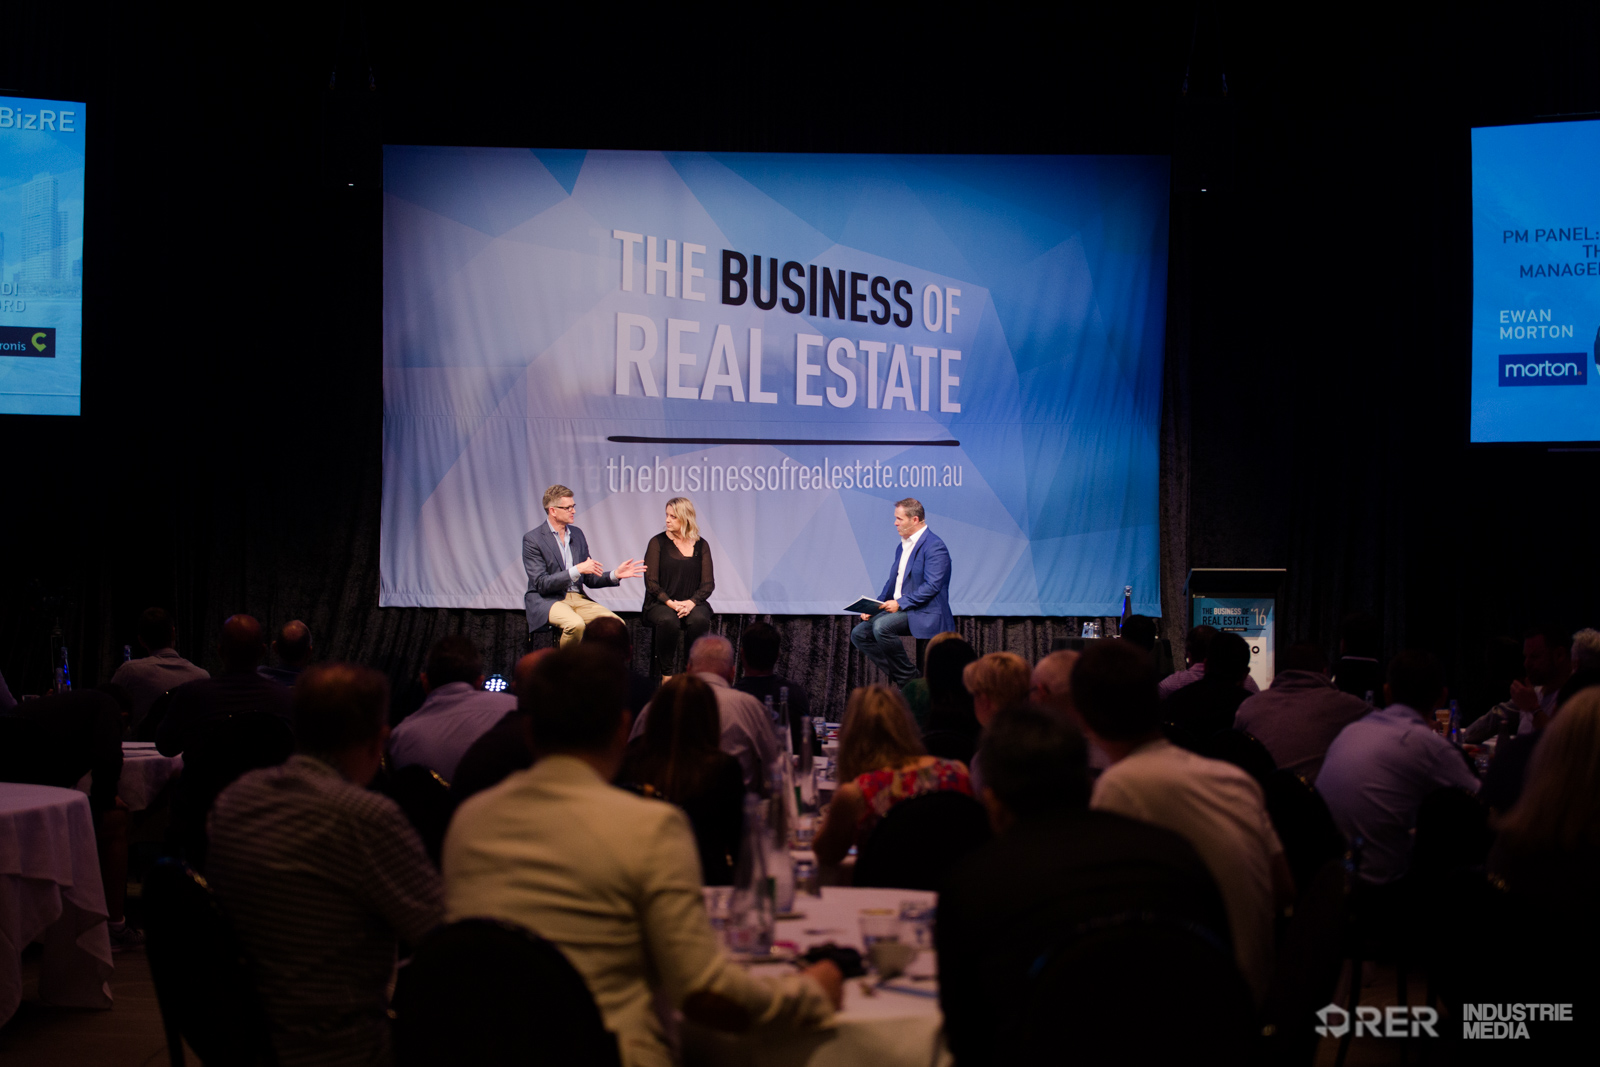 http://www.thebusinessofrealestate.com.au/wp-content/uploads/2016/09/RER_BUSINESS_OF_REAL_ESTATE_DAY_2-74.jpg